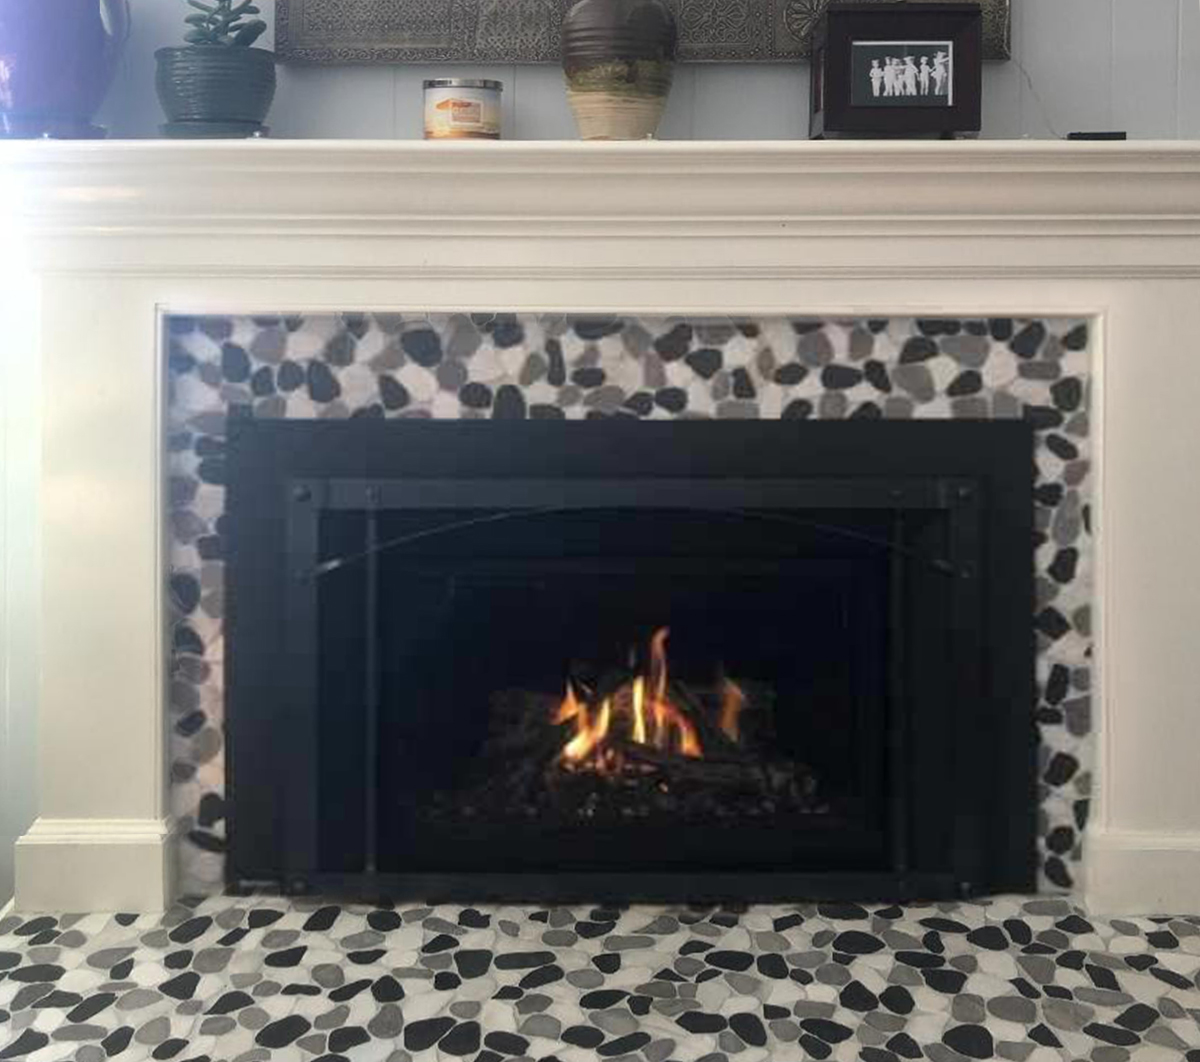 Chimney Inspection in Mountain View, Redwood City, San Mateo